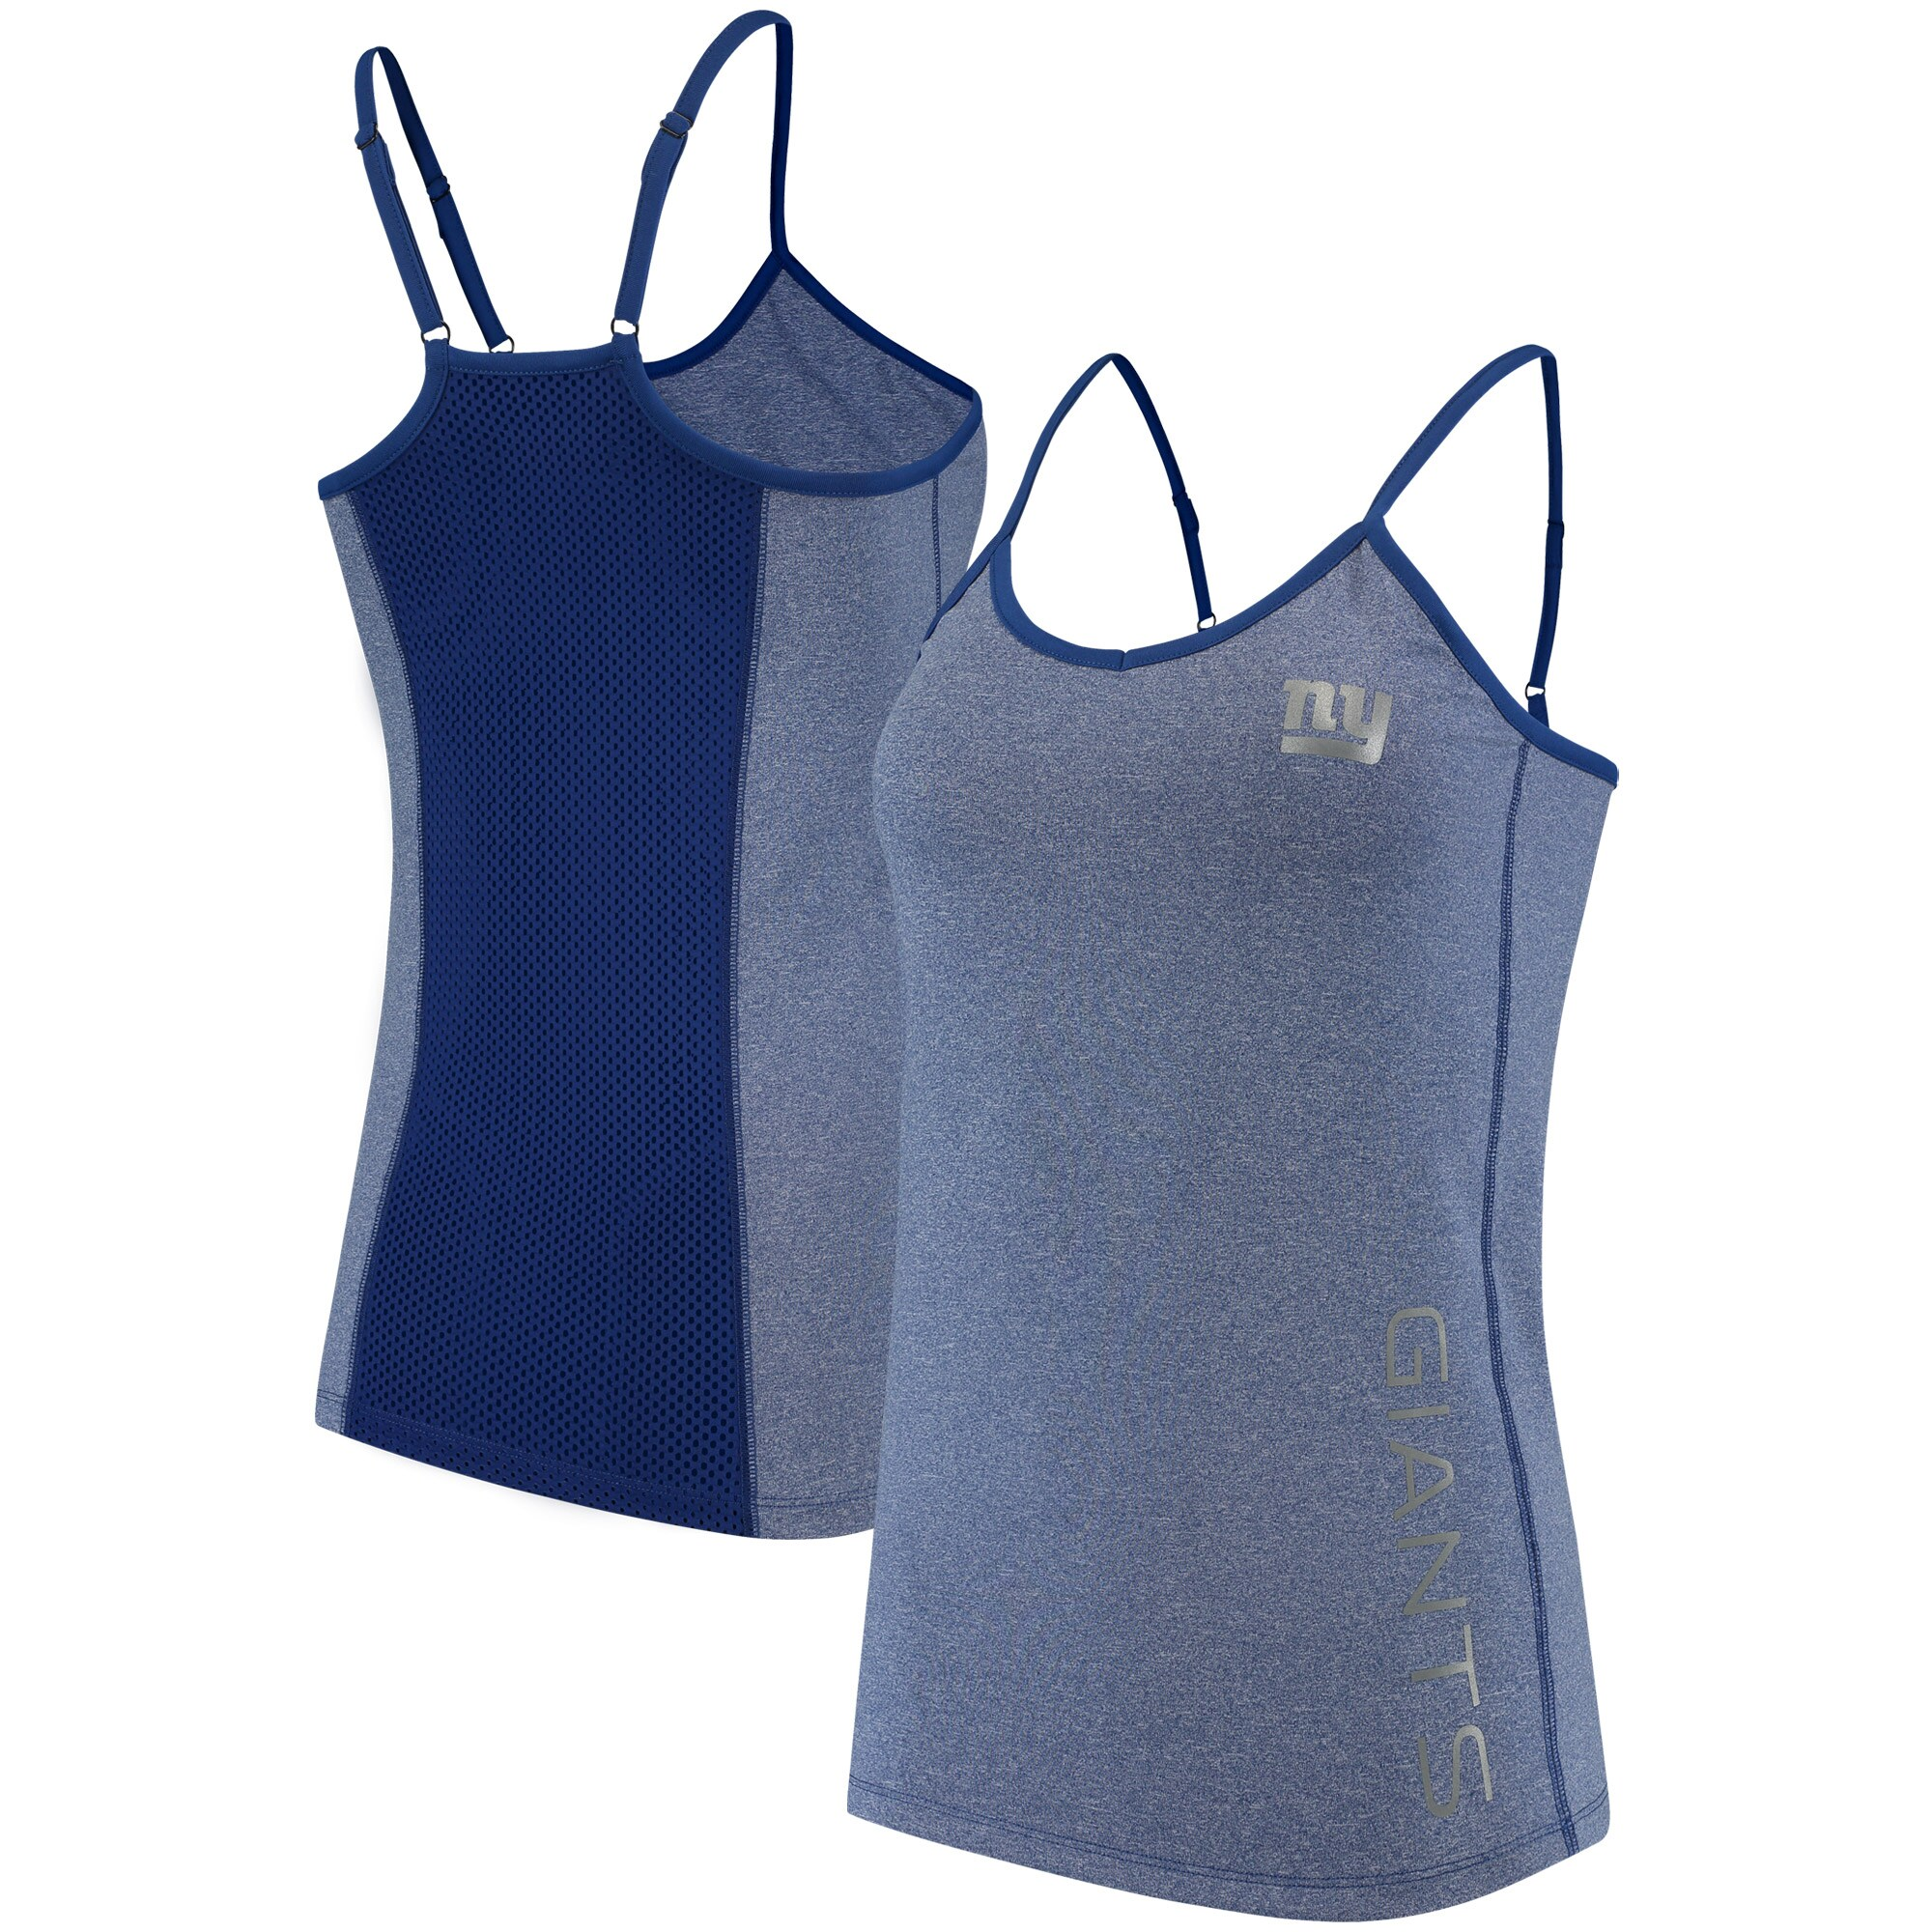 New York Giants G-III 4Her by Carl Banks Women's Full Count Tank Top - Royal